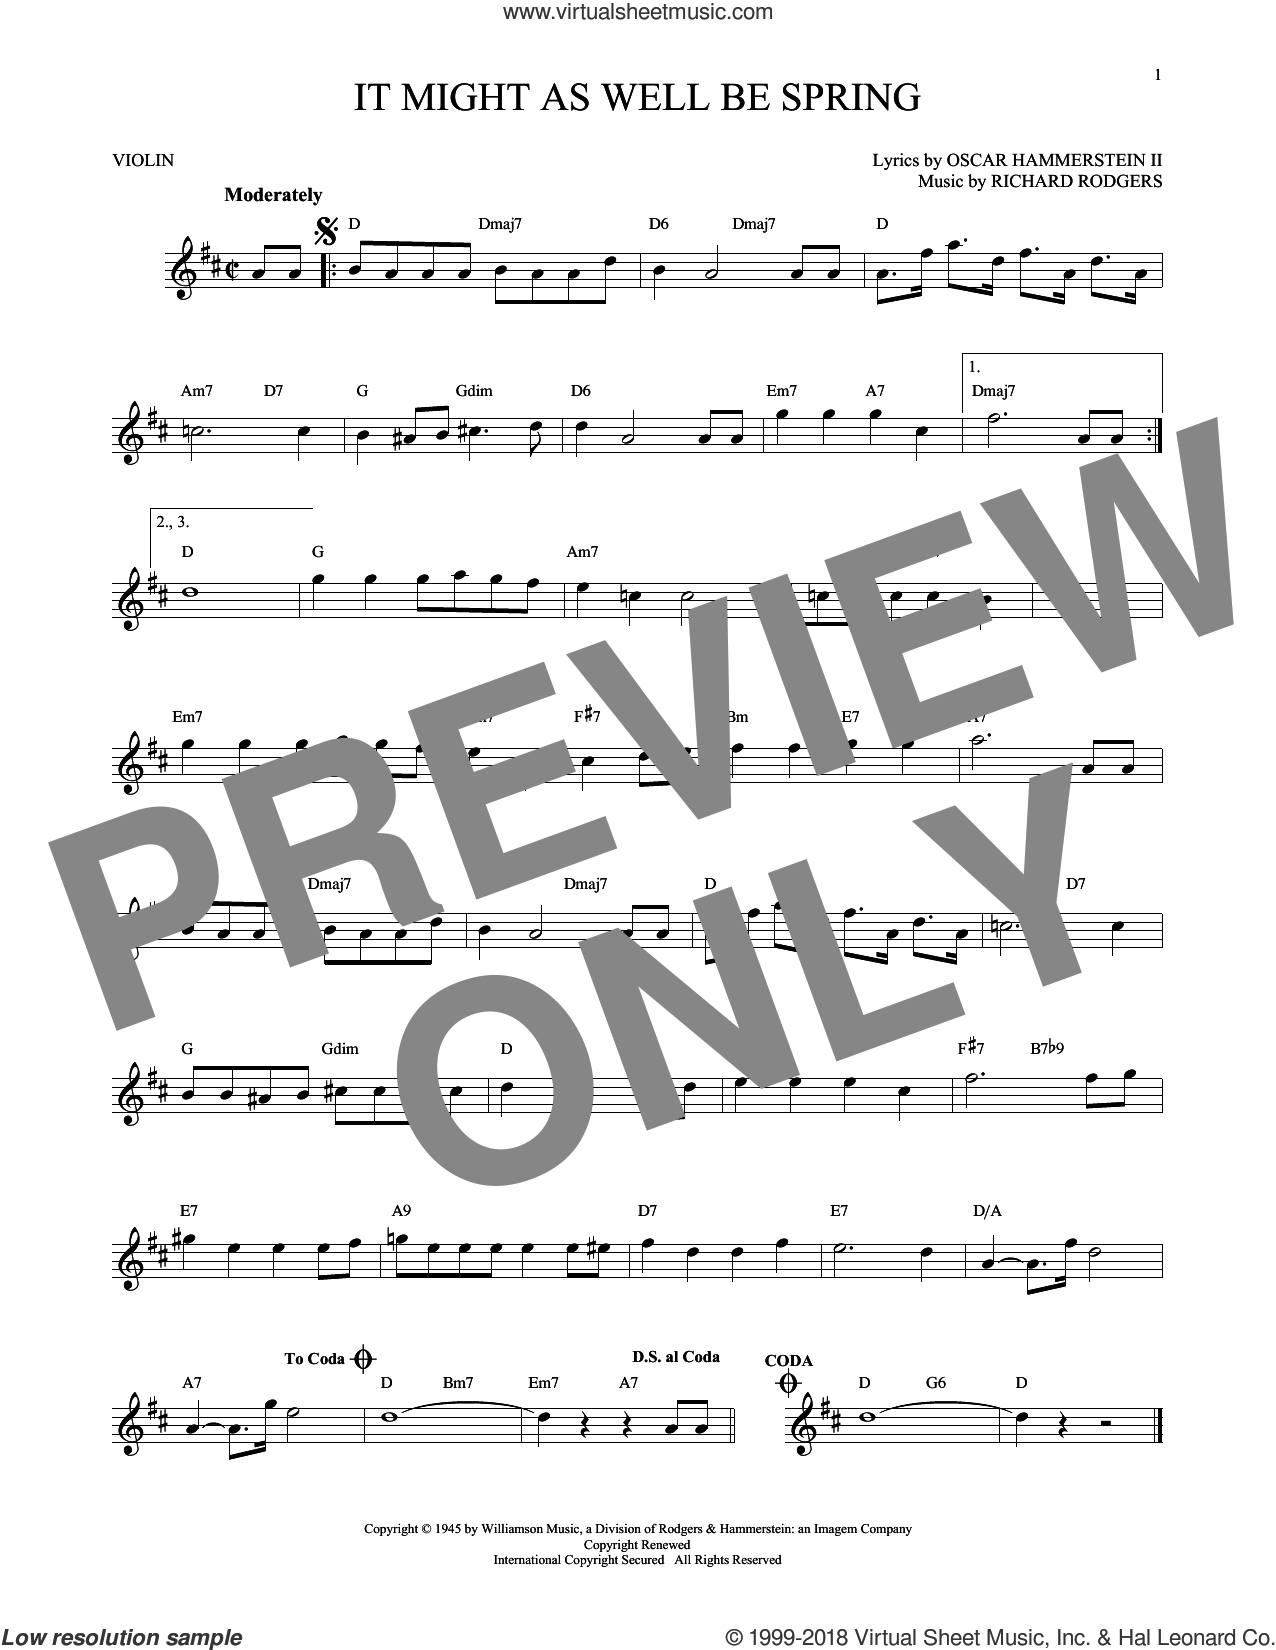 It Might As Well Be Spring sheet music for violin solo by Rodgers & Hammerstein, Oscar II Hammerstein and Richard Rodgers, intermediate skill level